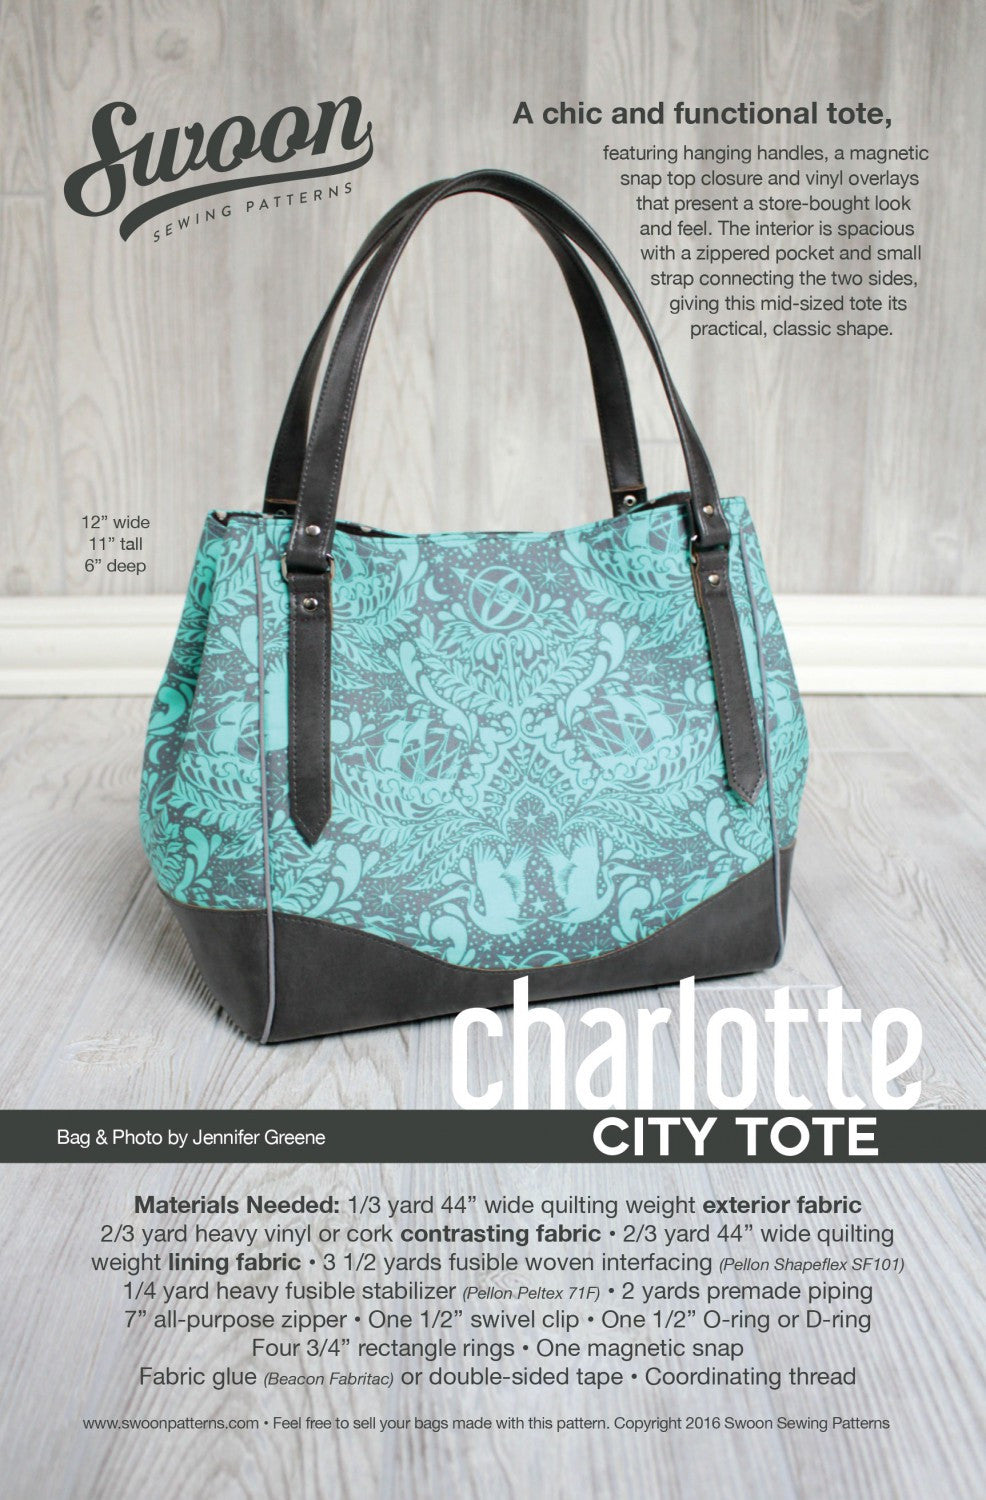 Charlotte City Tote by Swoon Sewing Patterns (Printed Paper Pattern ...